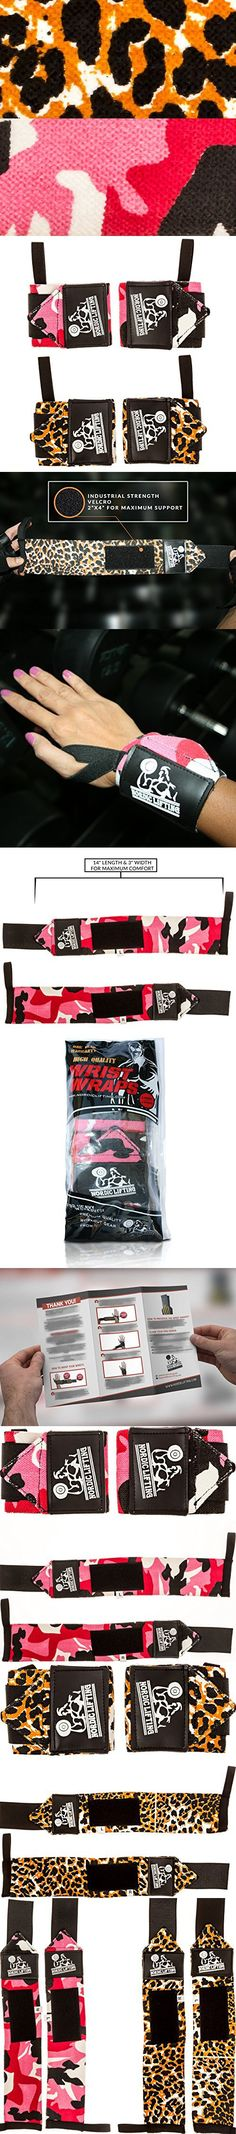 Wrist Wraps (2 Pairs/4 Wraps) for Weightlifting/Crossfit/Powerlifting/Bodybuilding - For Women & Men -Premium Quality Equipment & Accessories Hand Strength-(Leopard & Camo Red)-1 Year Warranty